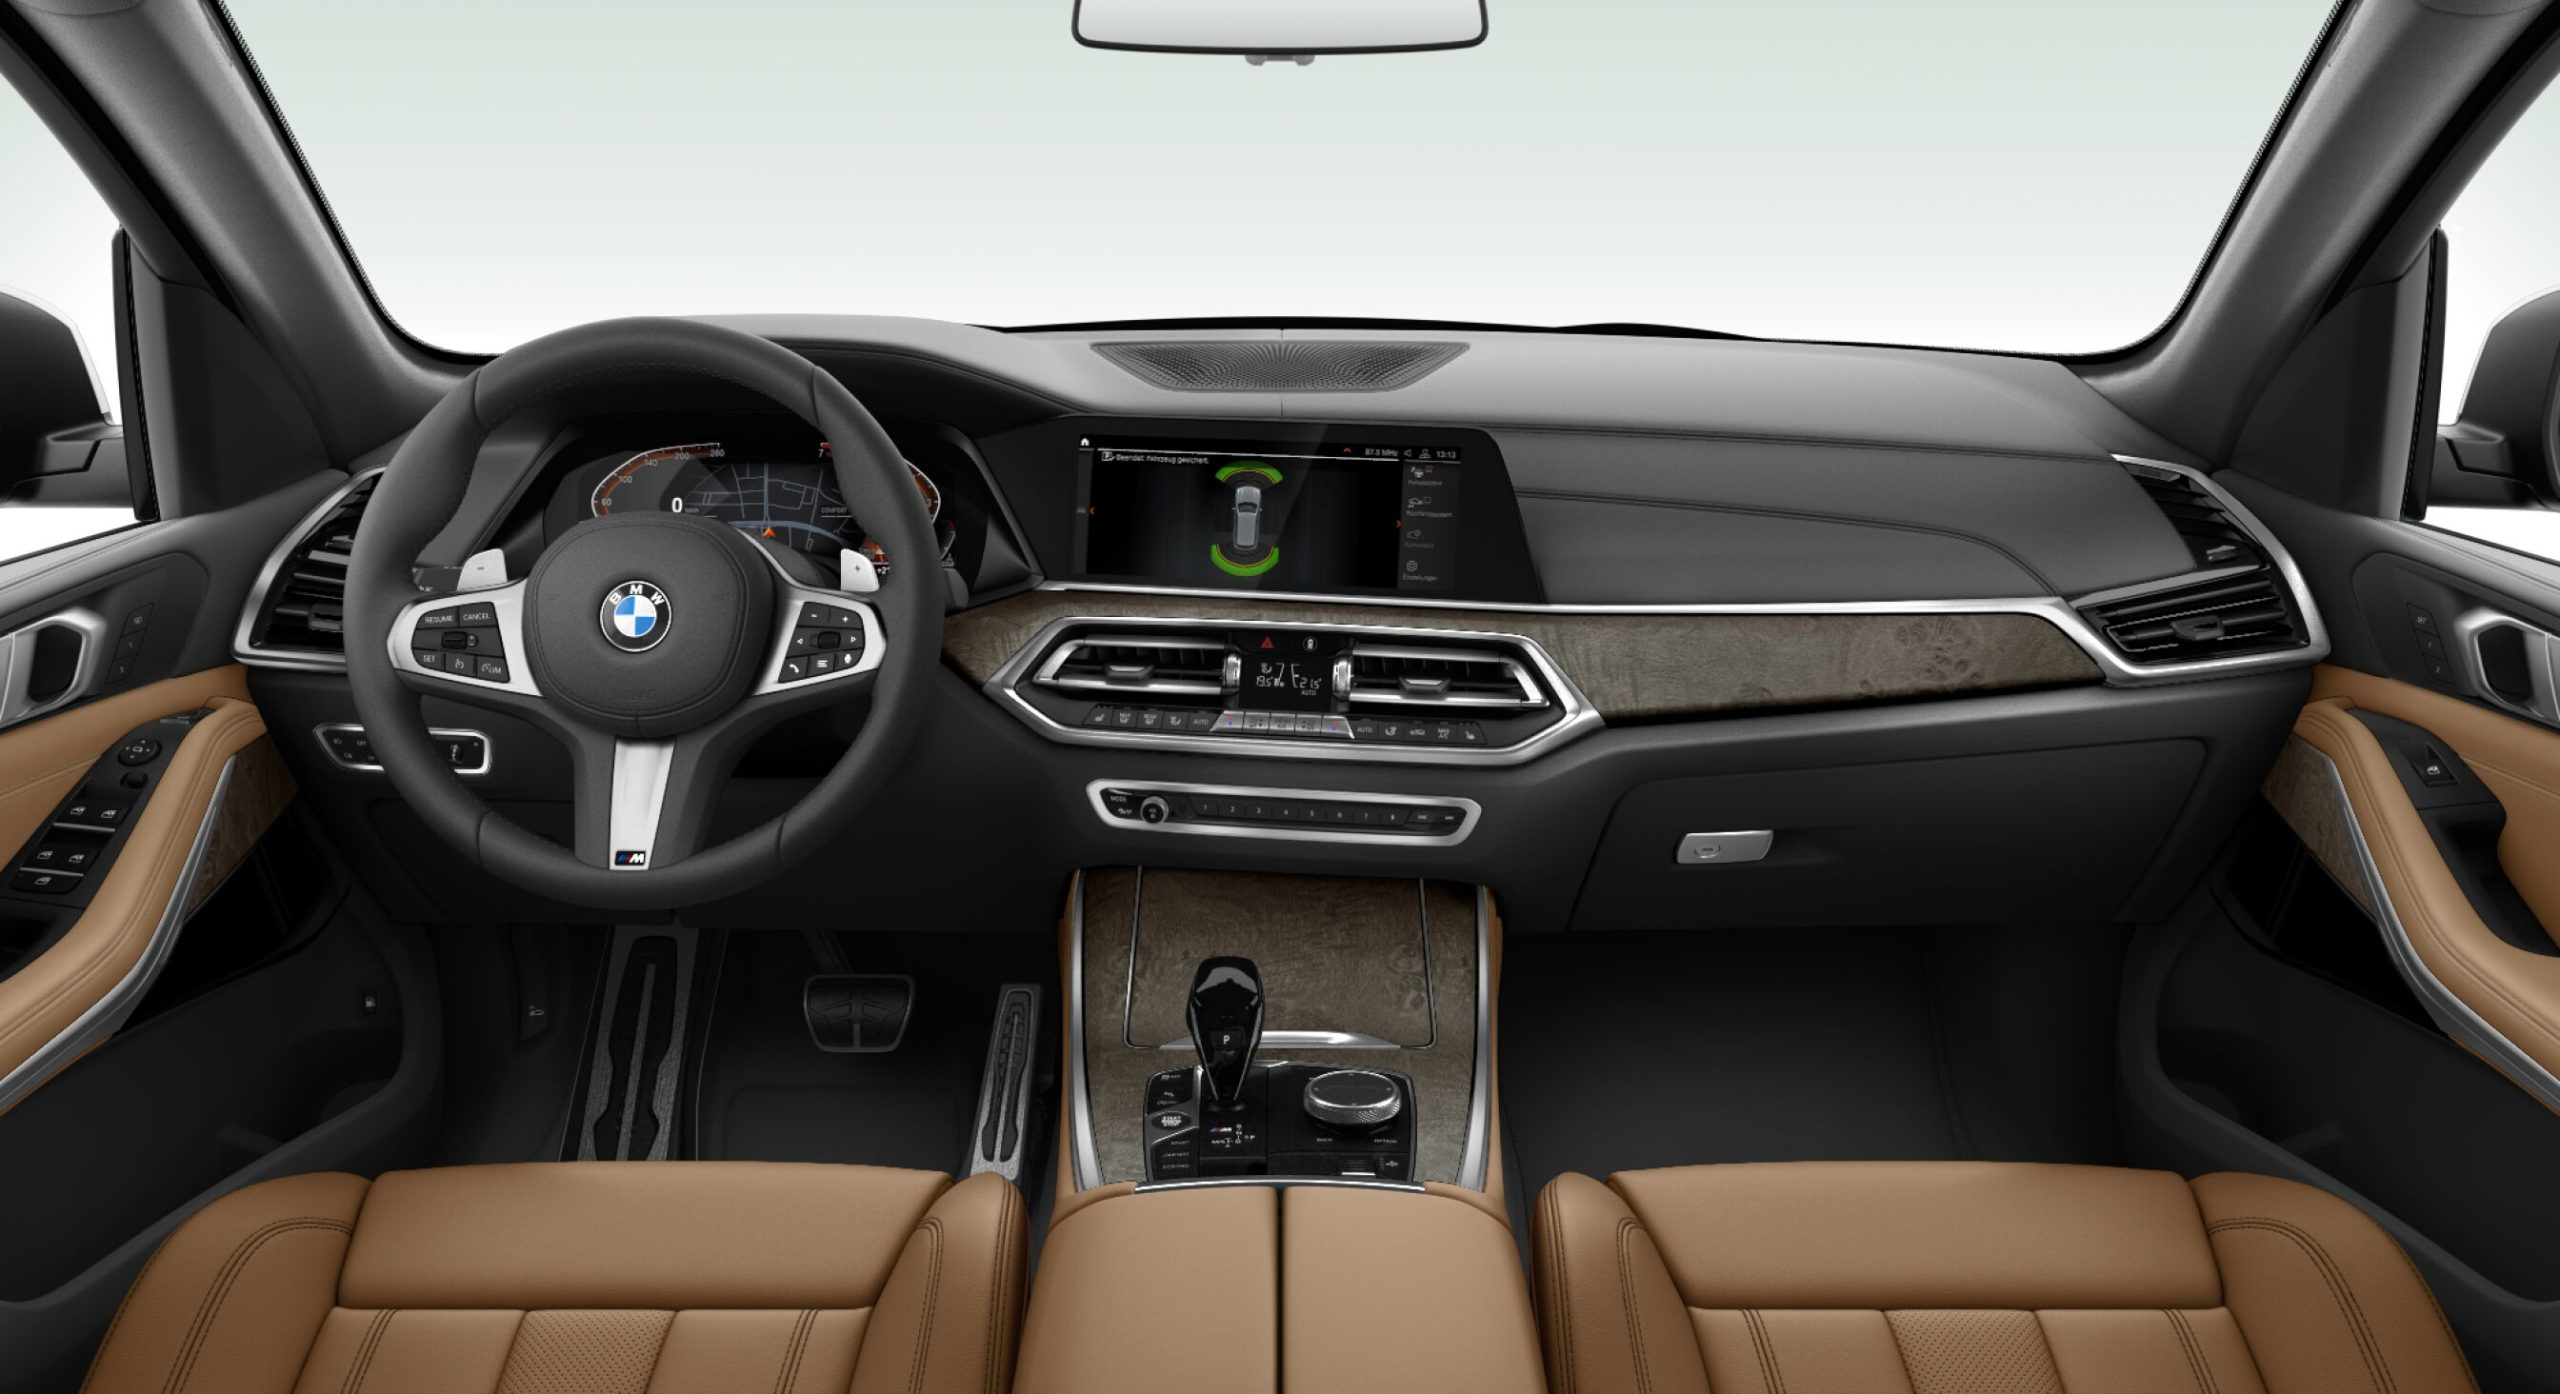 Bmw Updates The 7 Series 8 Series X5 X6 And X7 Models In Spring 2020